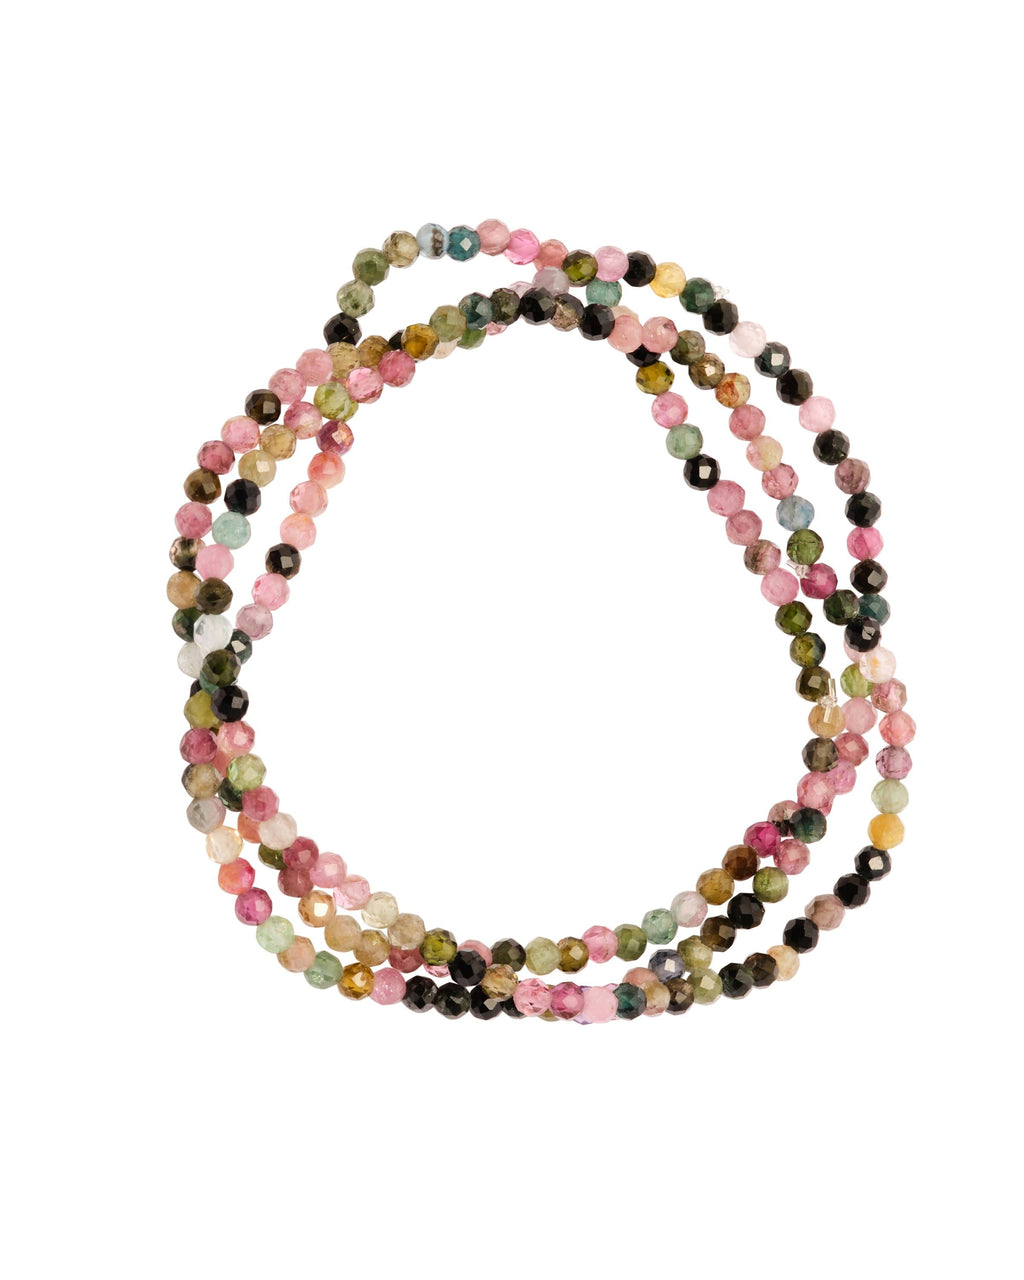 Mixed Tourmaline Faceted Stack - PRATT DADDY